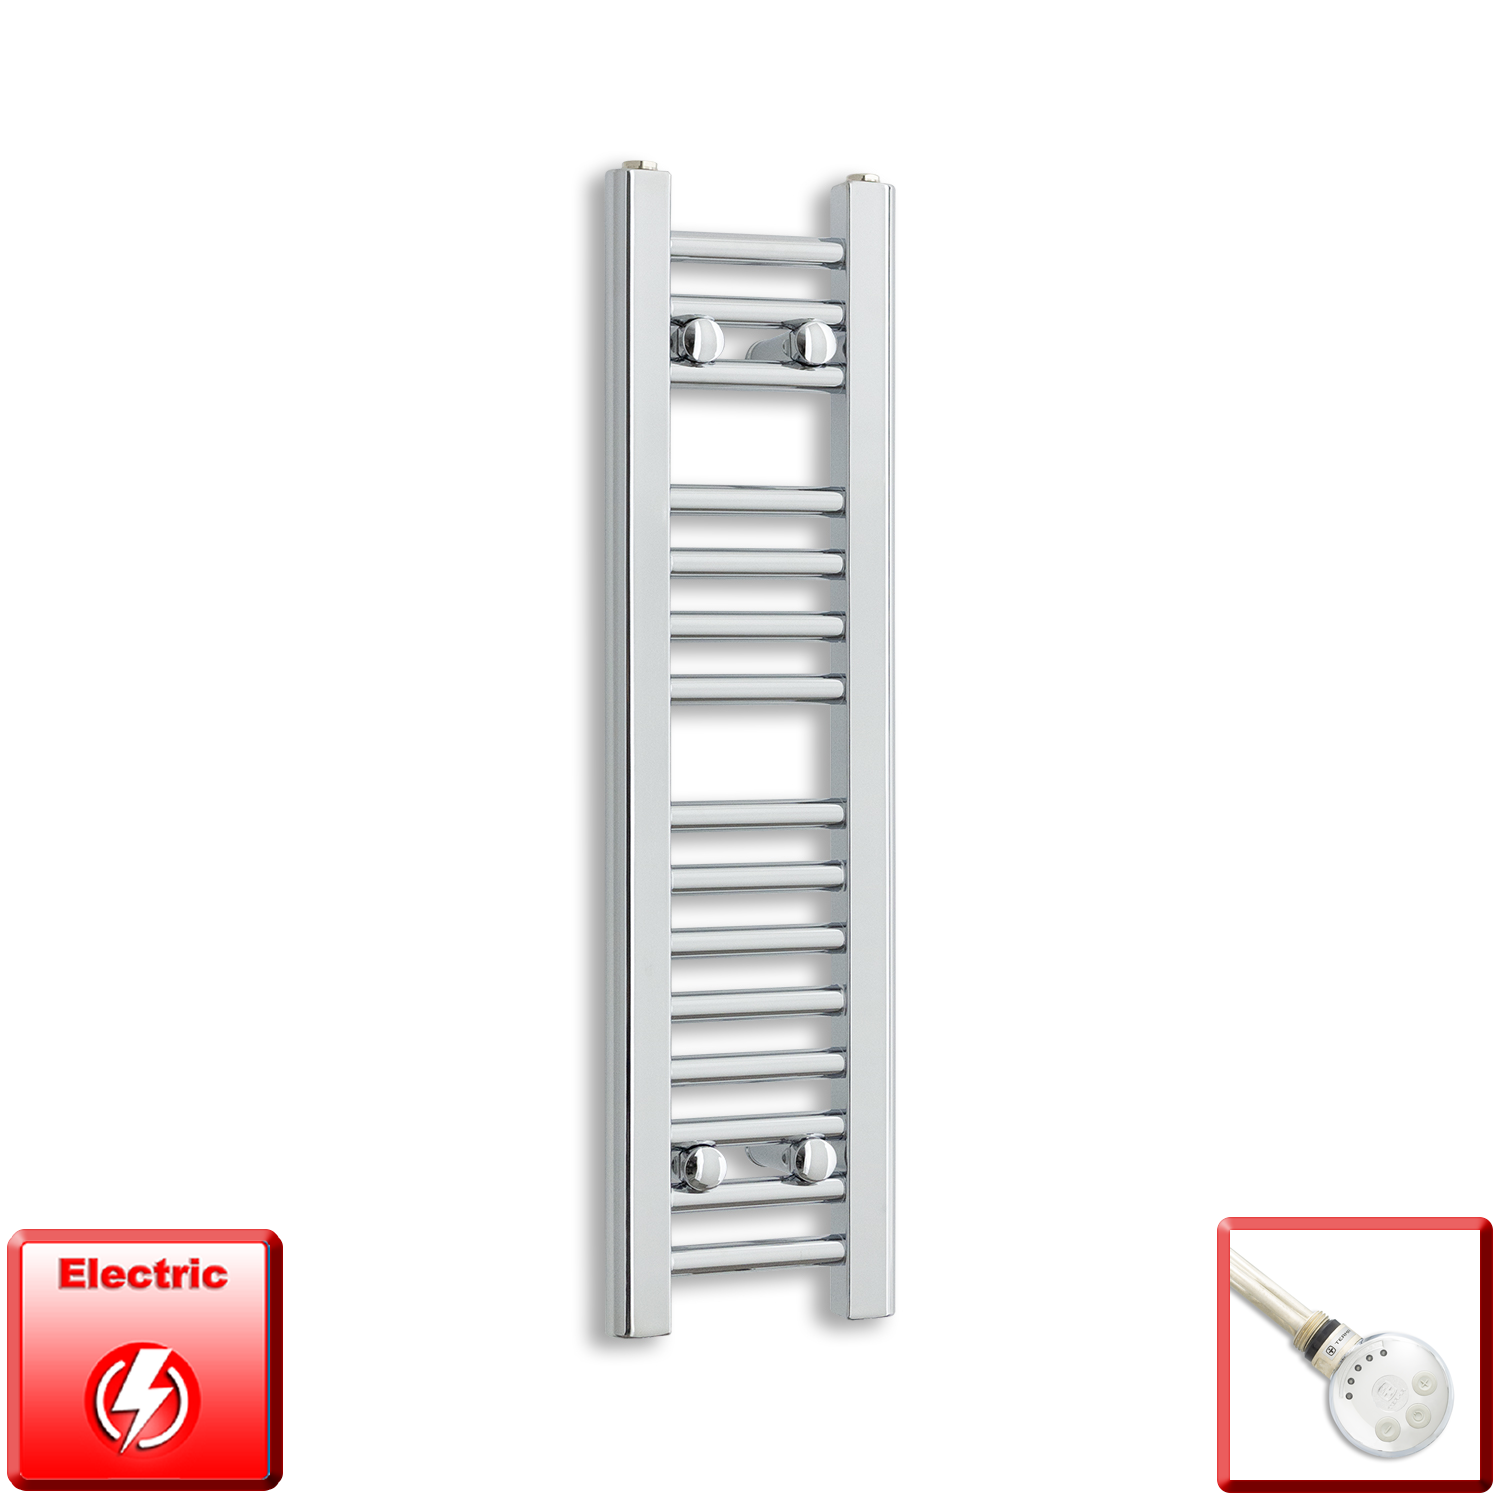 250mm Wide 800mm High Pre-Filled Chrome Electric Towel Rail Radiator With Thermostatic MEG Element